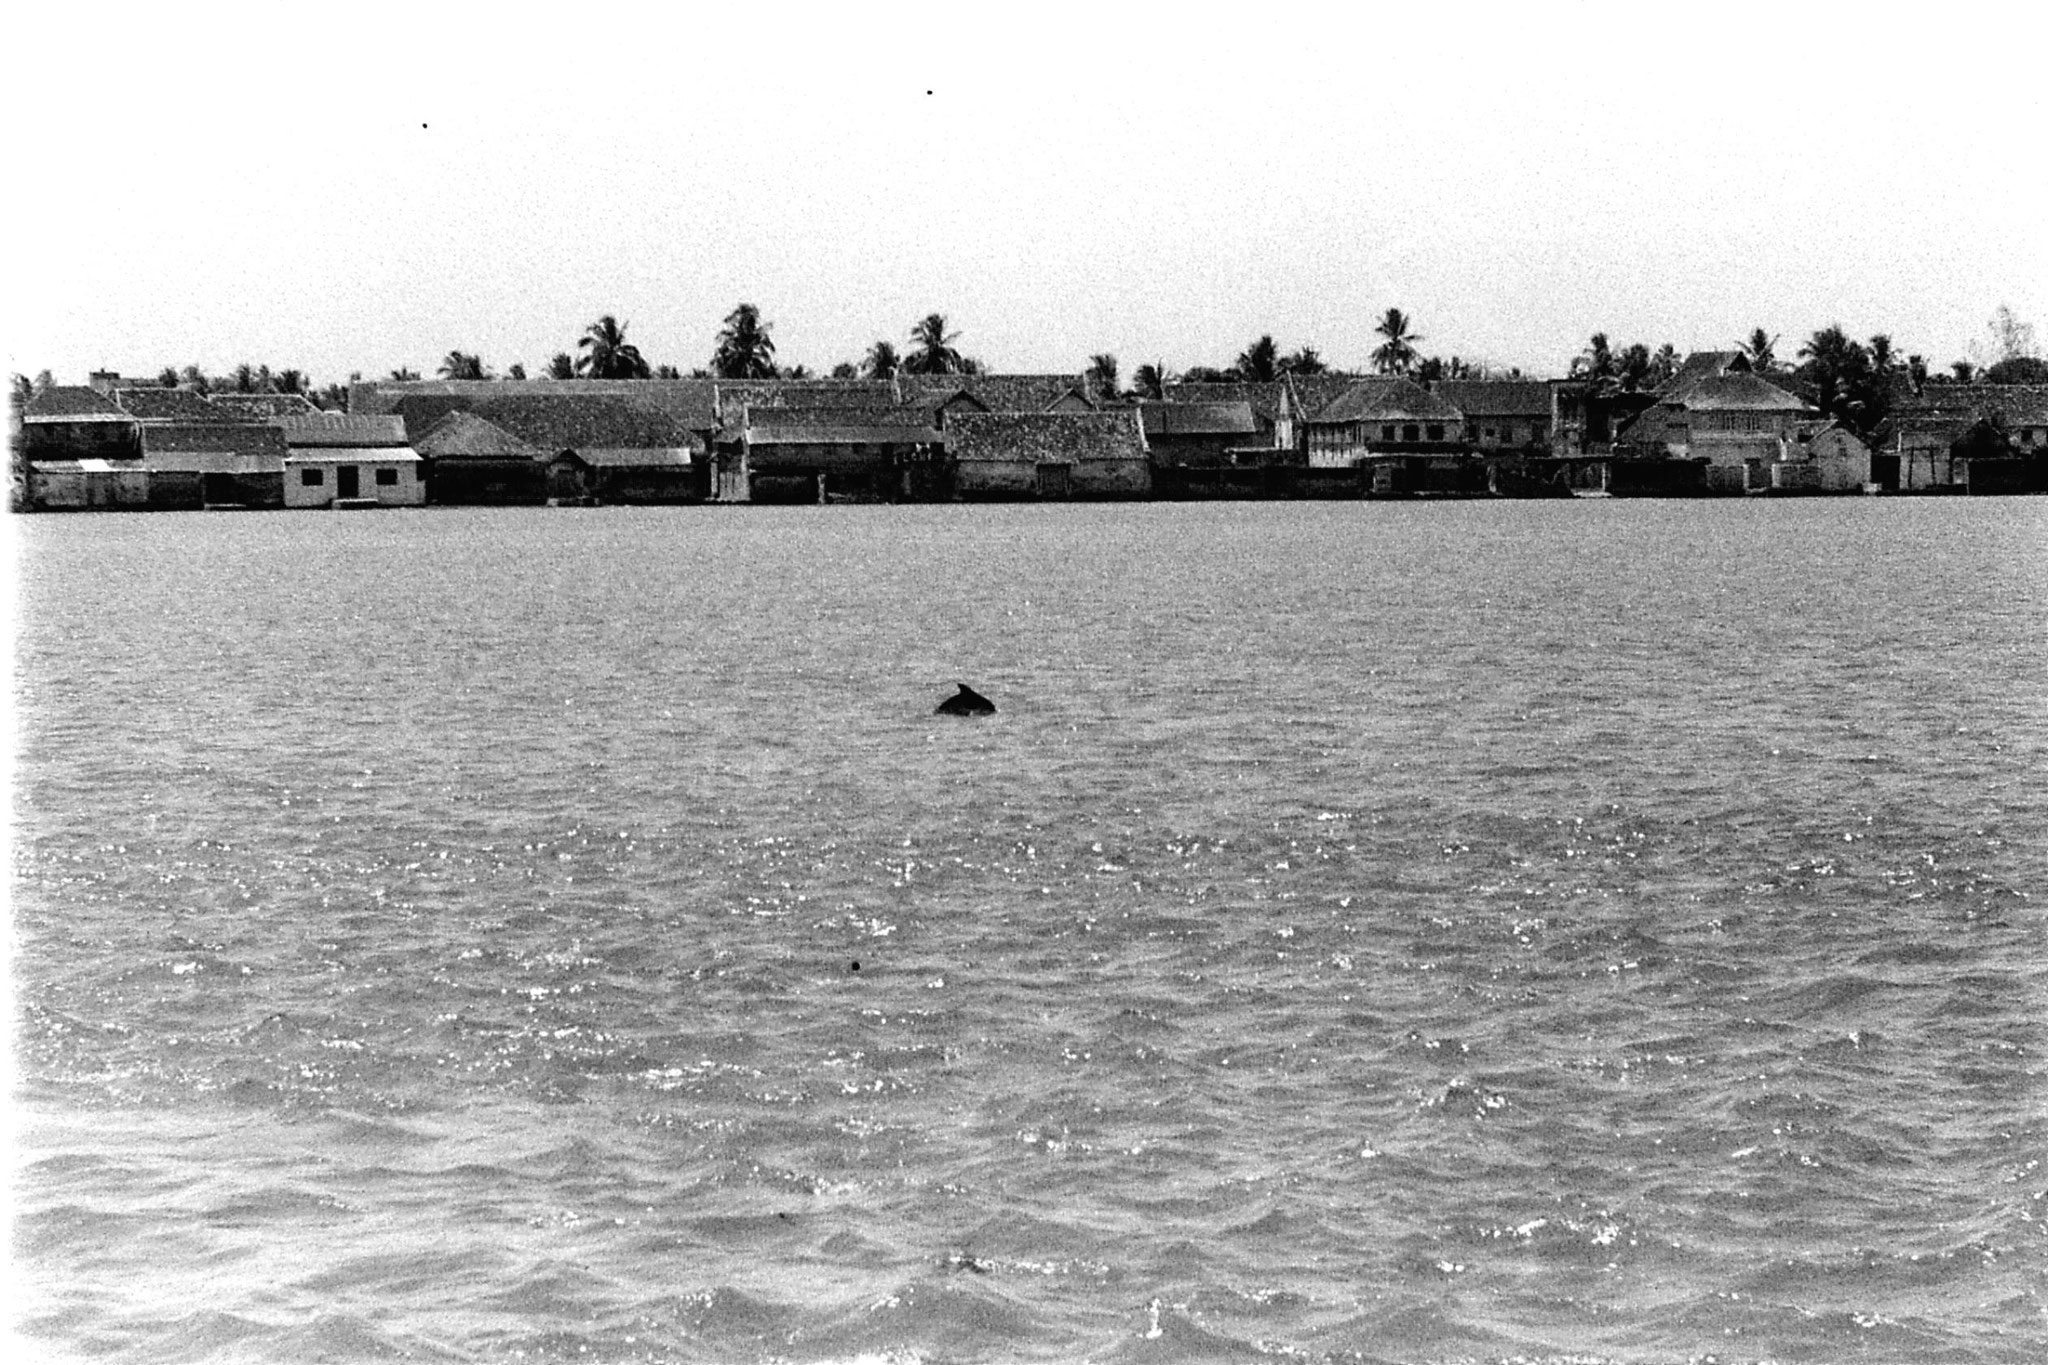 25/2/90: 4: Cochin dolphins and views of Fort Cochin